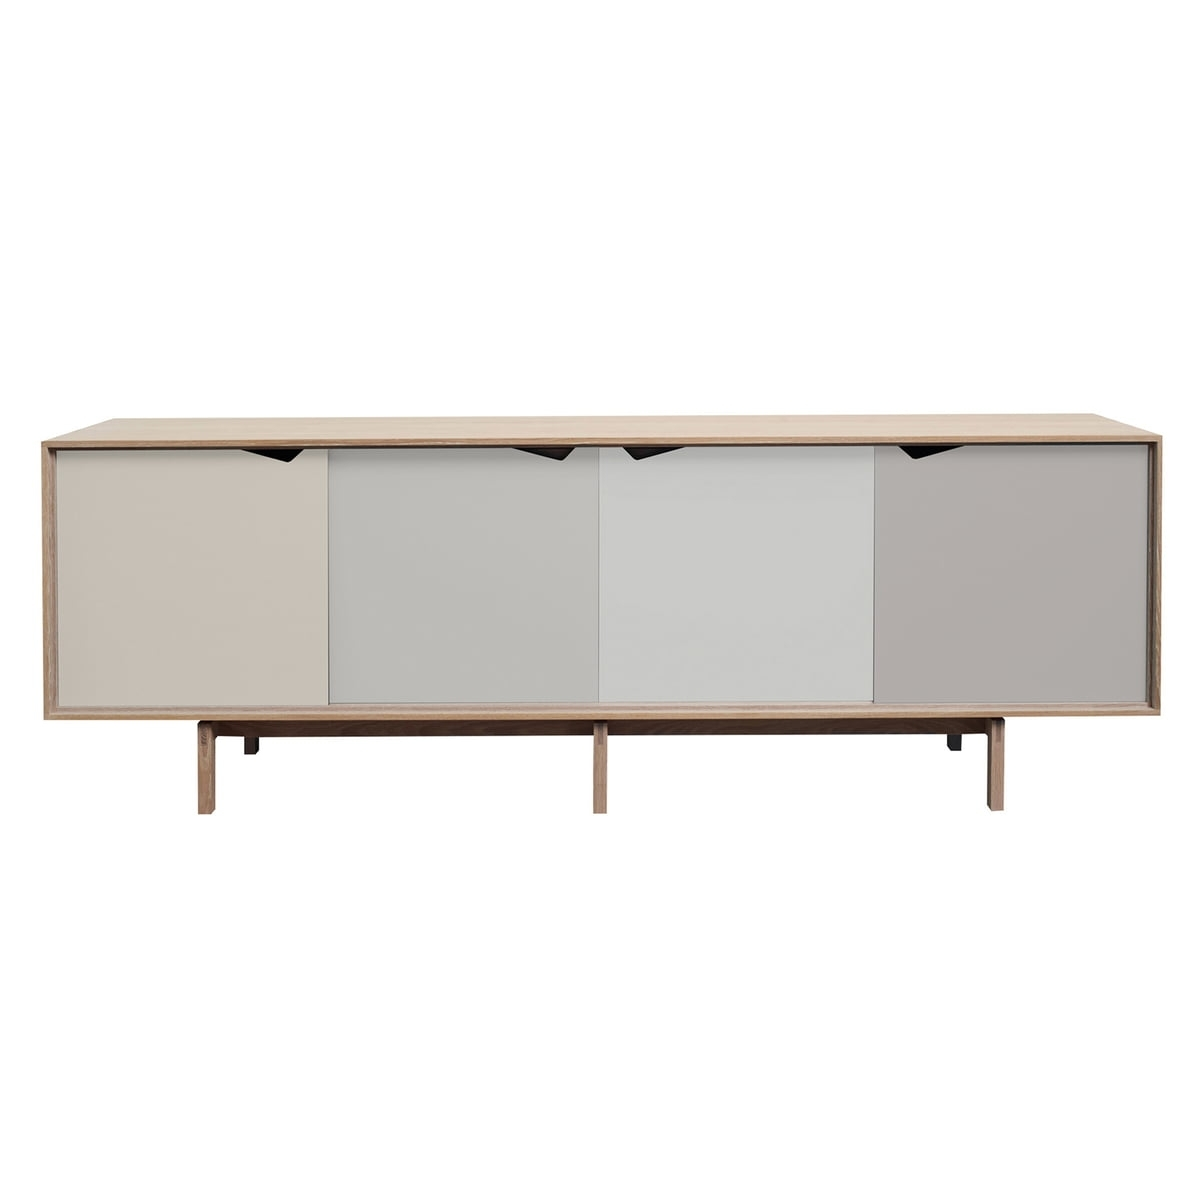 S1 Sideboard Multicoloured Andersen Furniture Throughout Iron Sideboards (View 21 of 30)